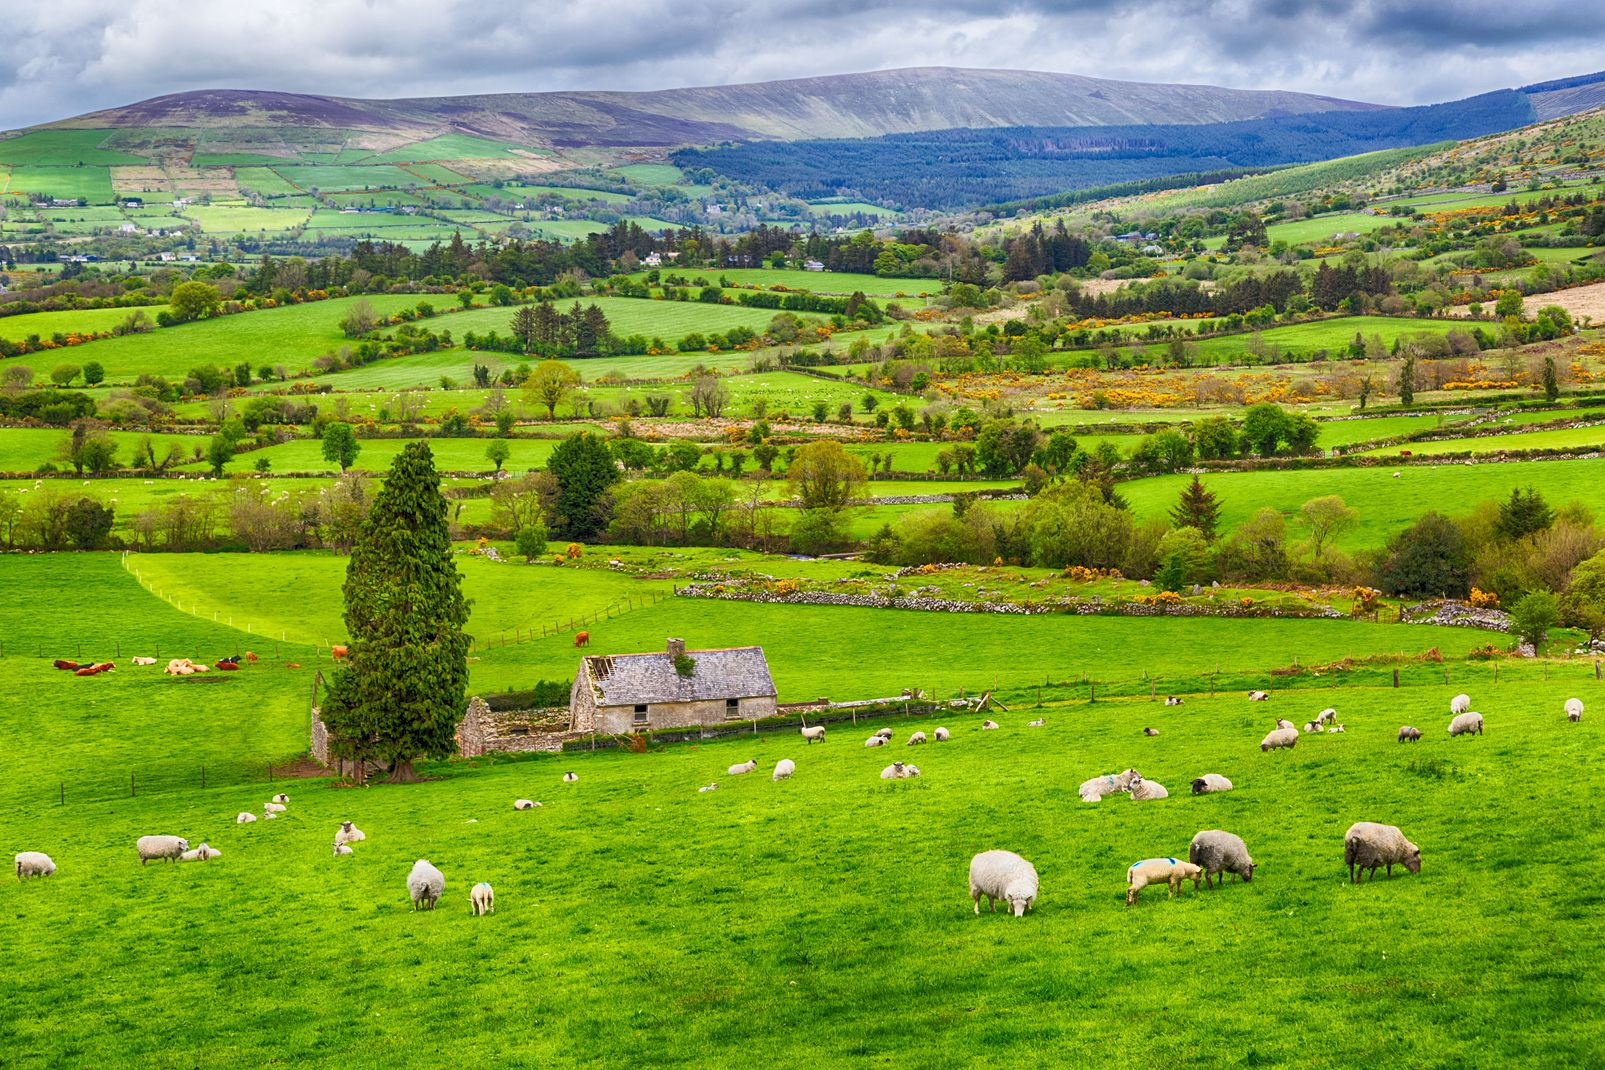 Northern Ireland, United Kingdom